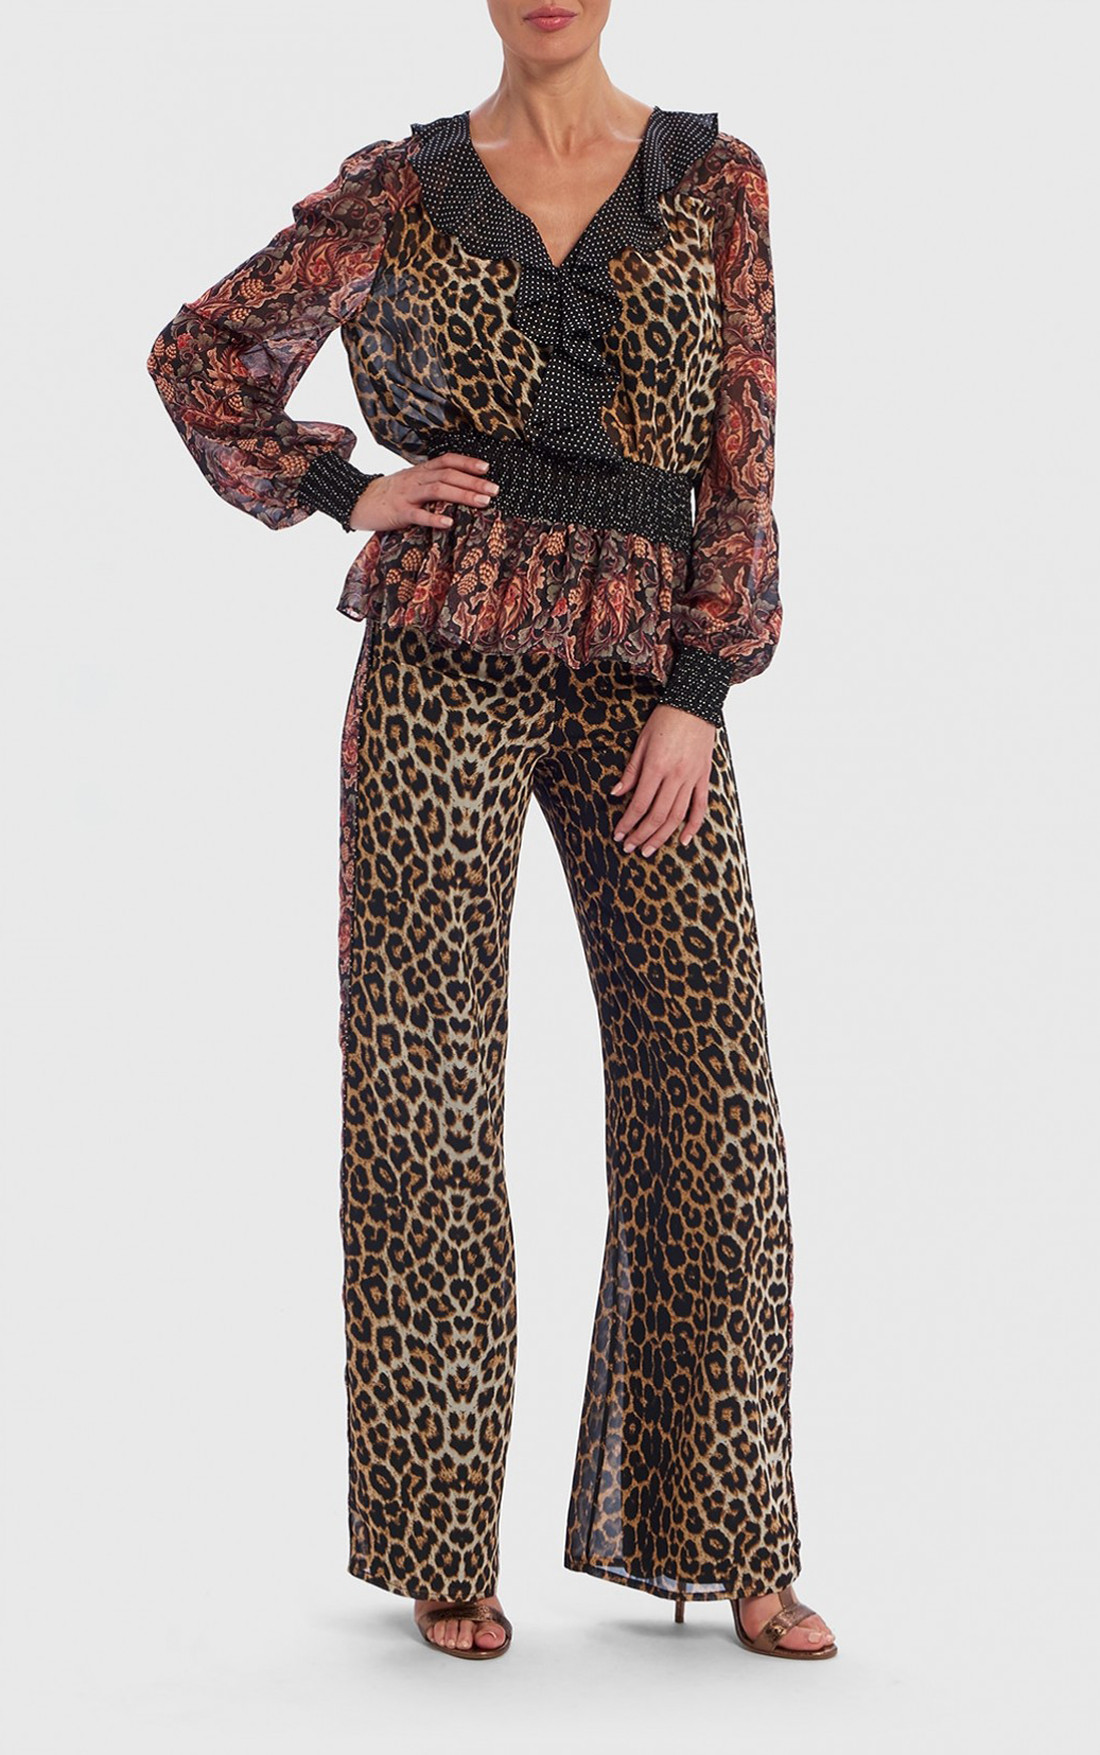 Forever Unique - Vina Leopard Print And Floral Long Sleeve Ruffle Blouse (TJ9703)